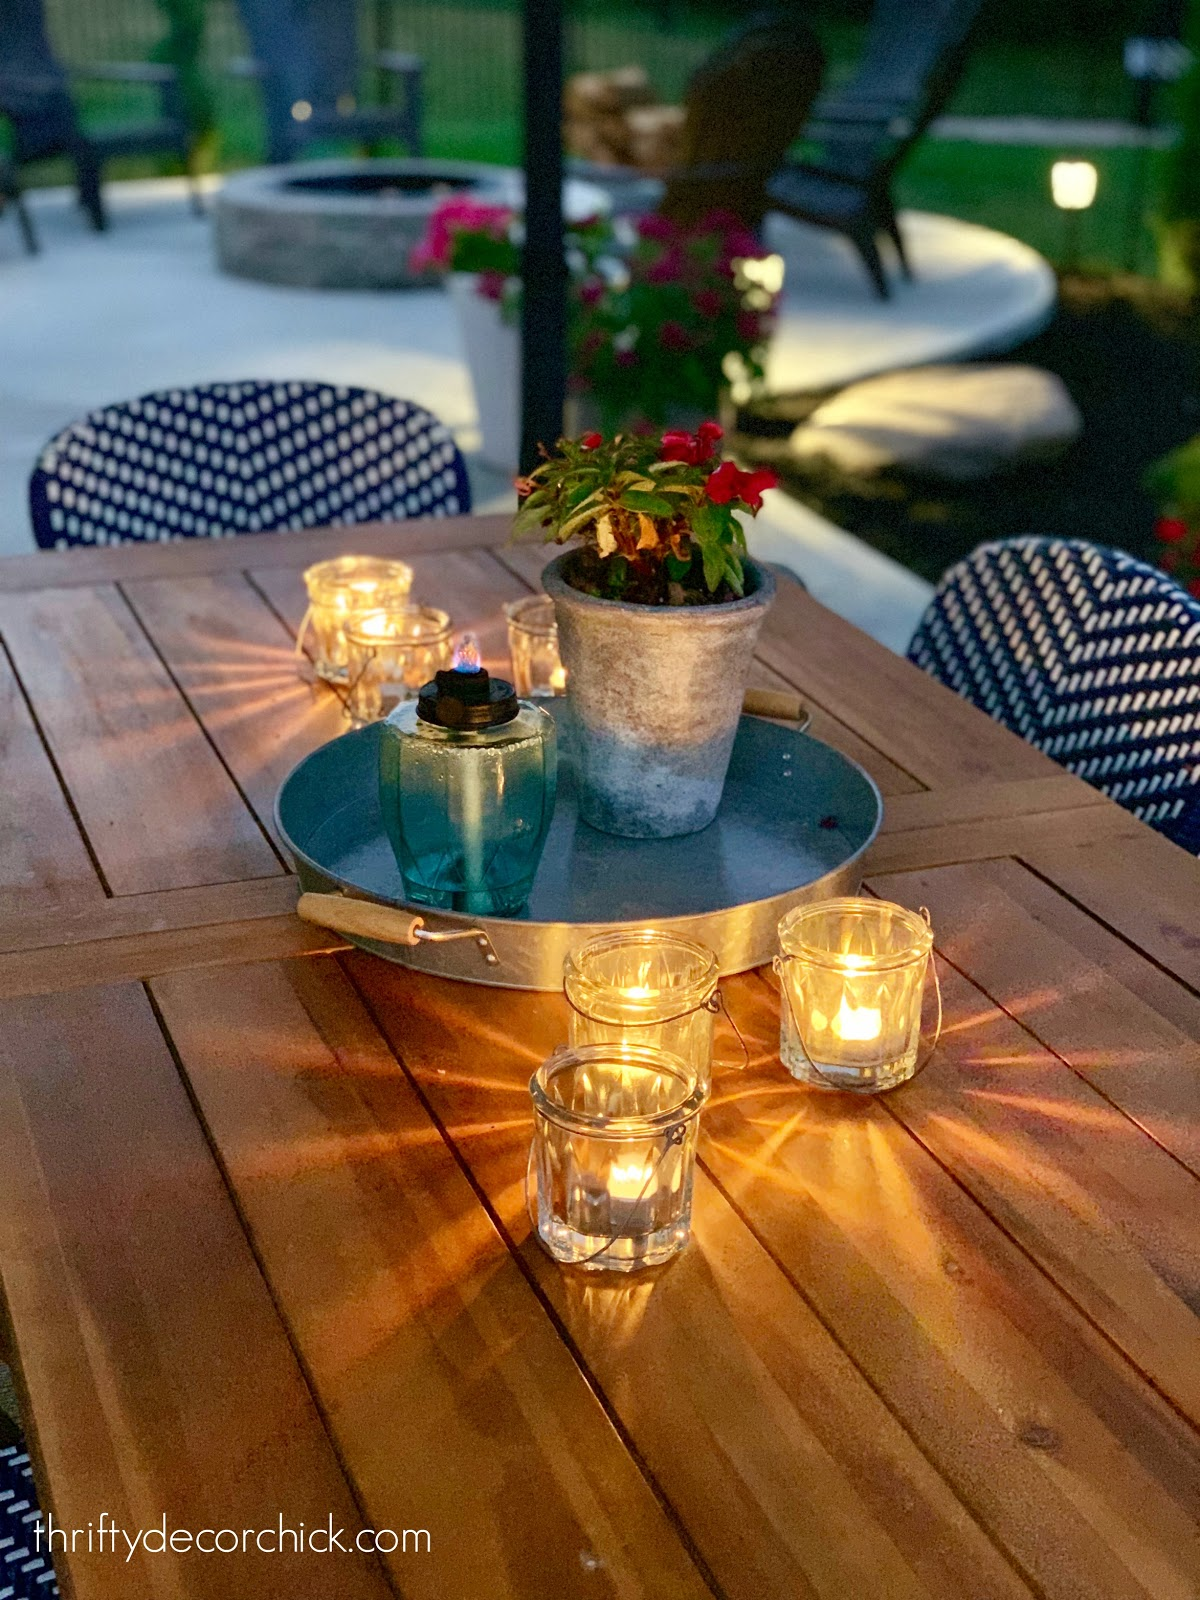 Thrifty Decor Chick patio reveal